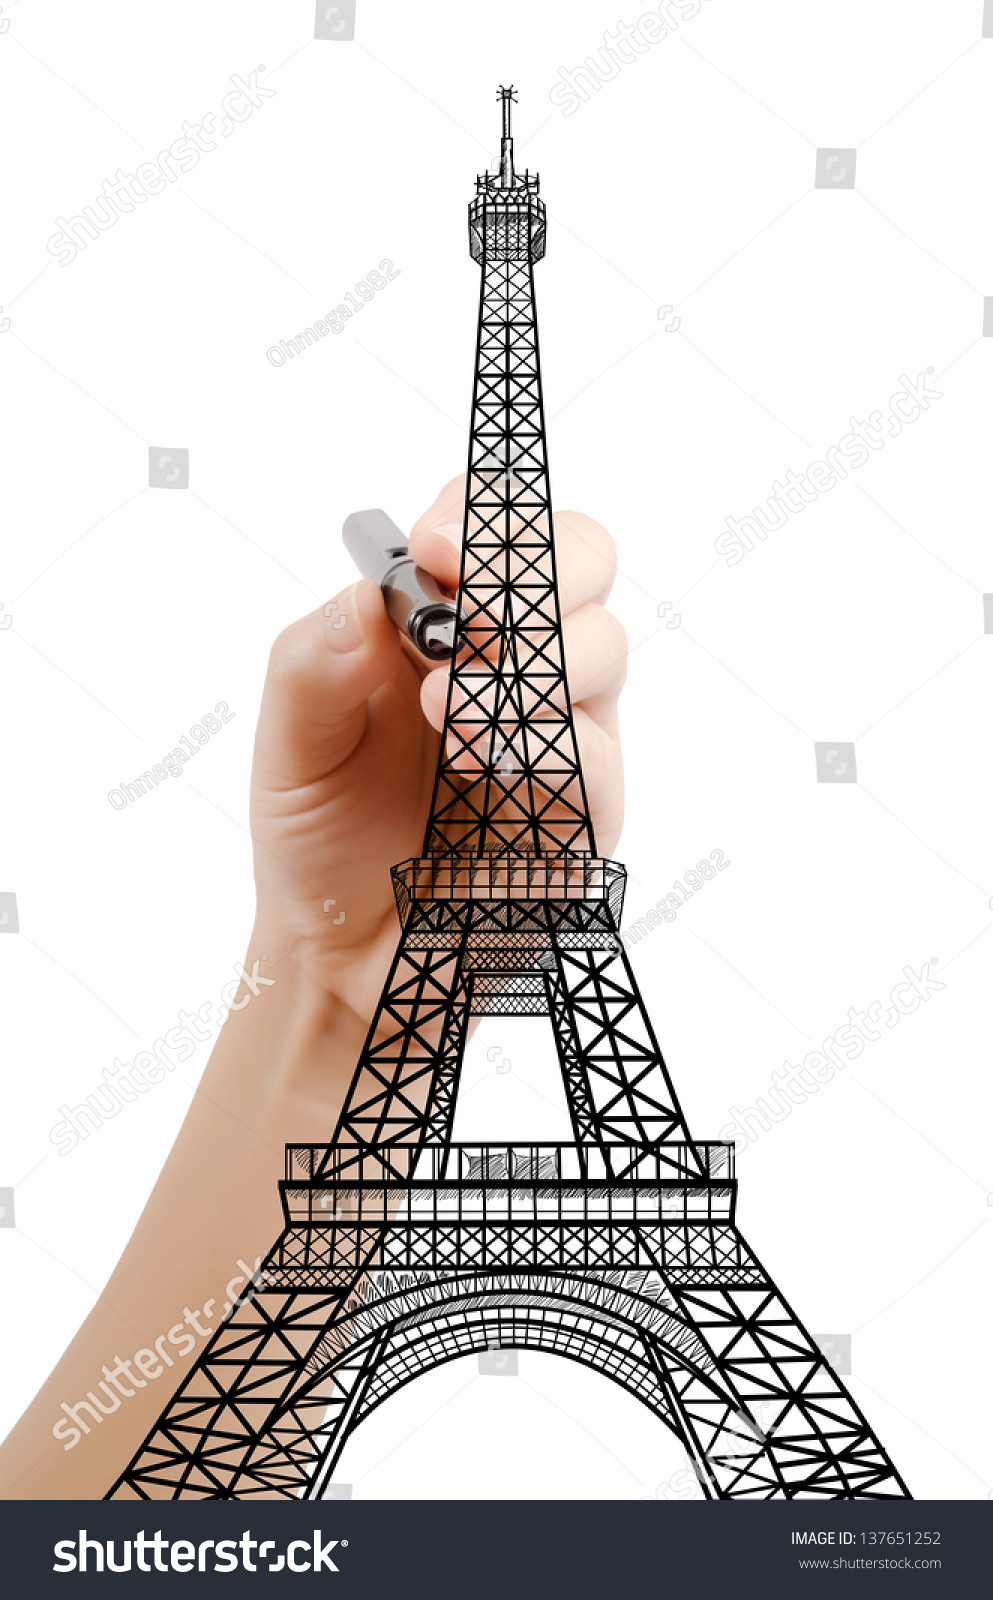 Line Art Eiffel Tower : Hand drawing eiffel tower line paris stock illustration